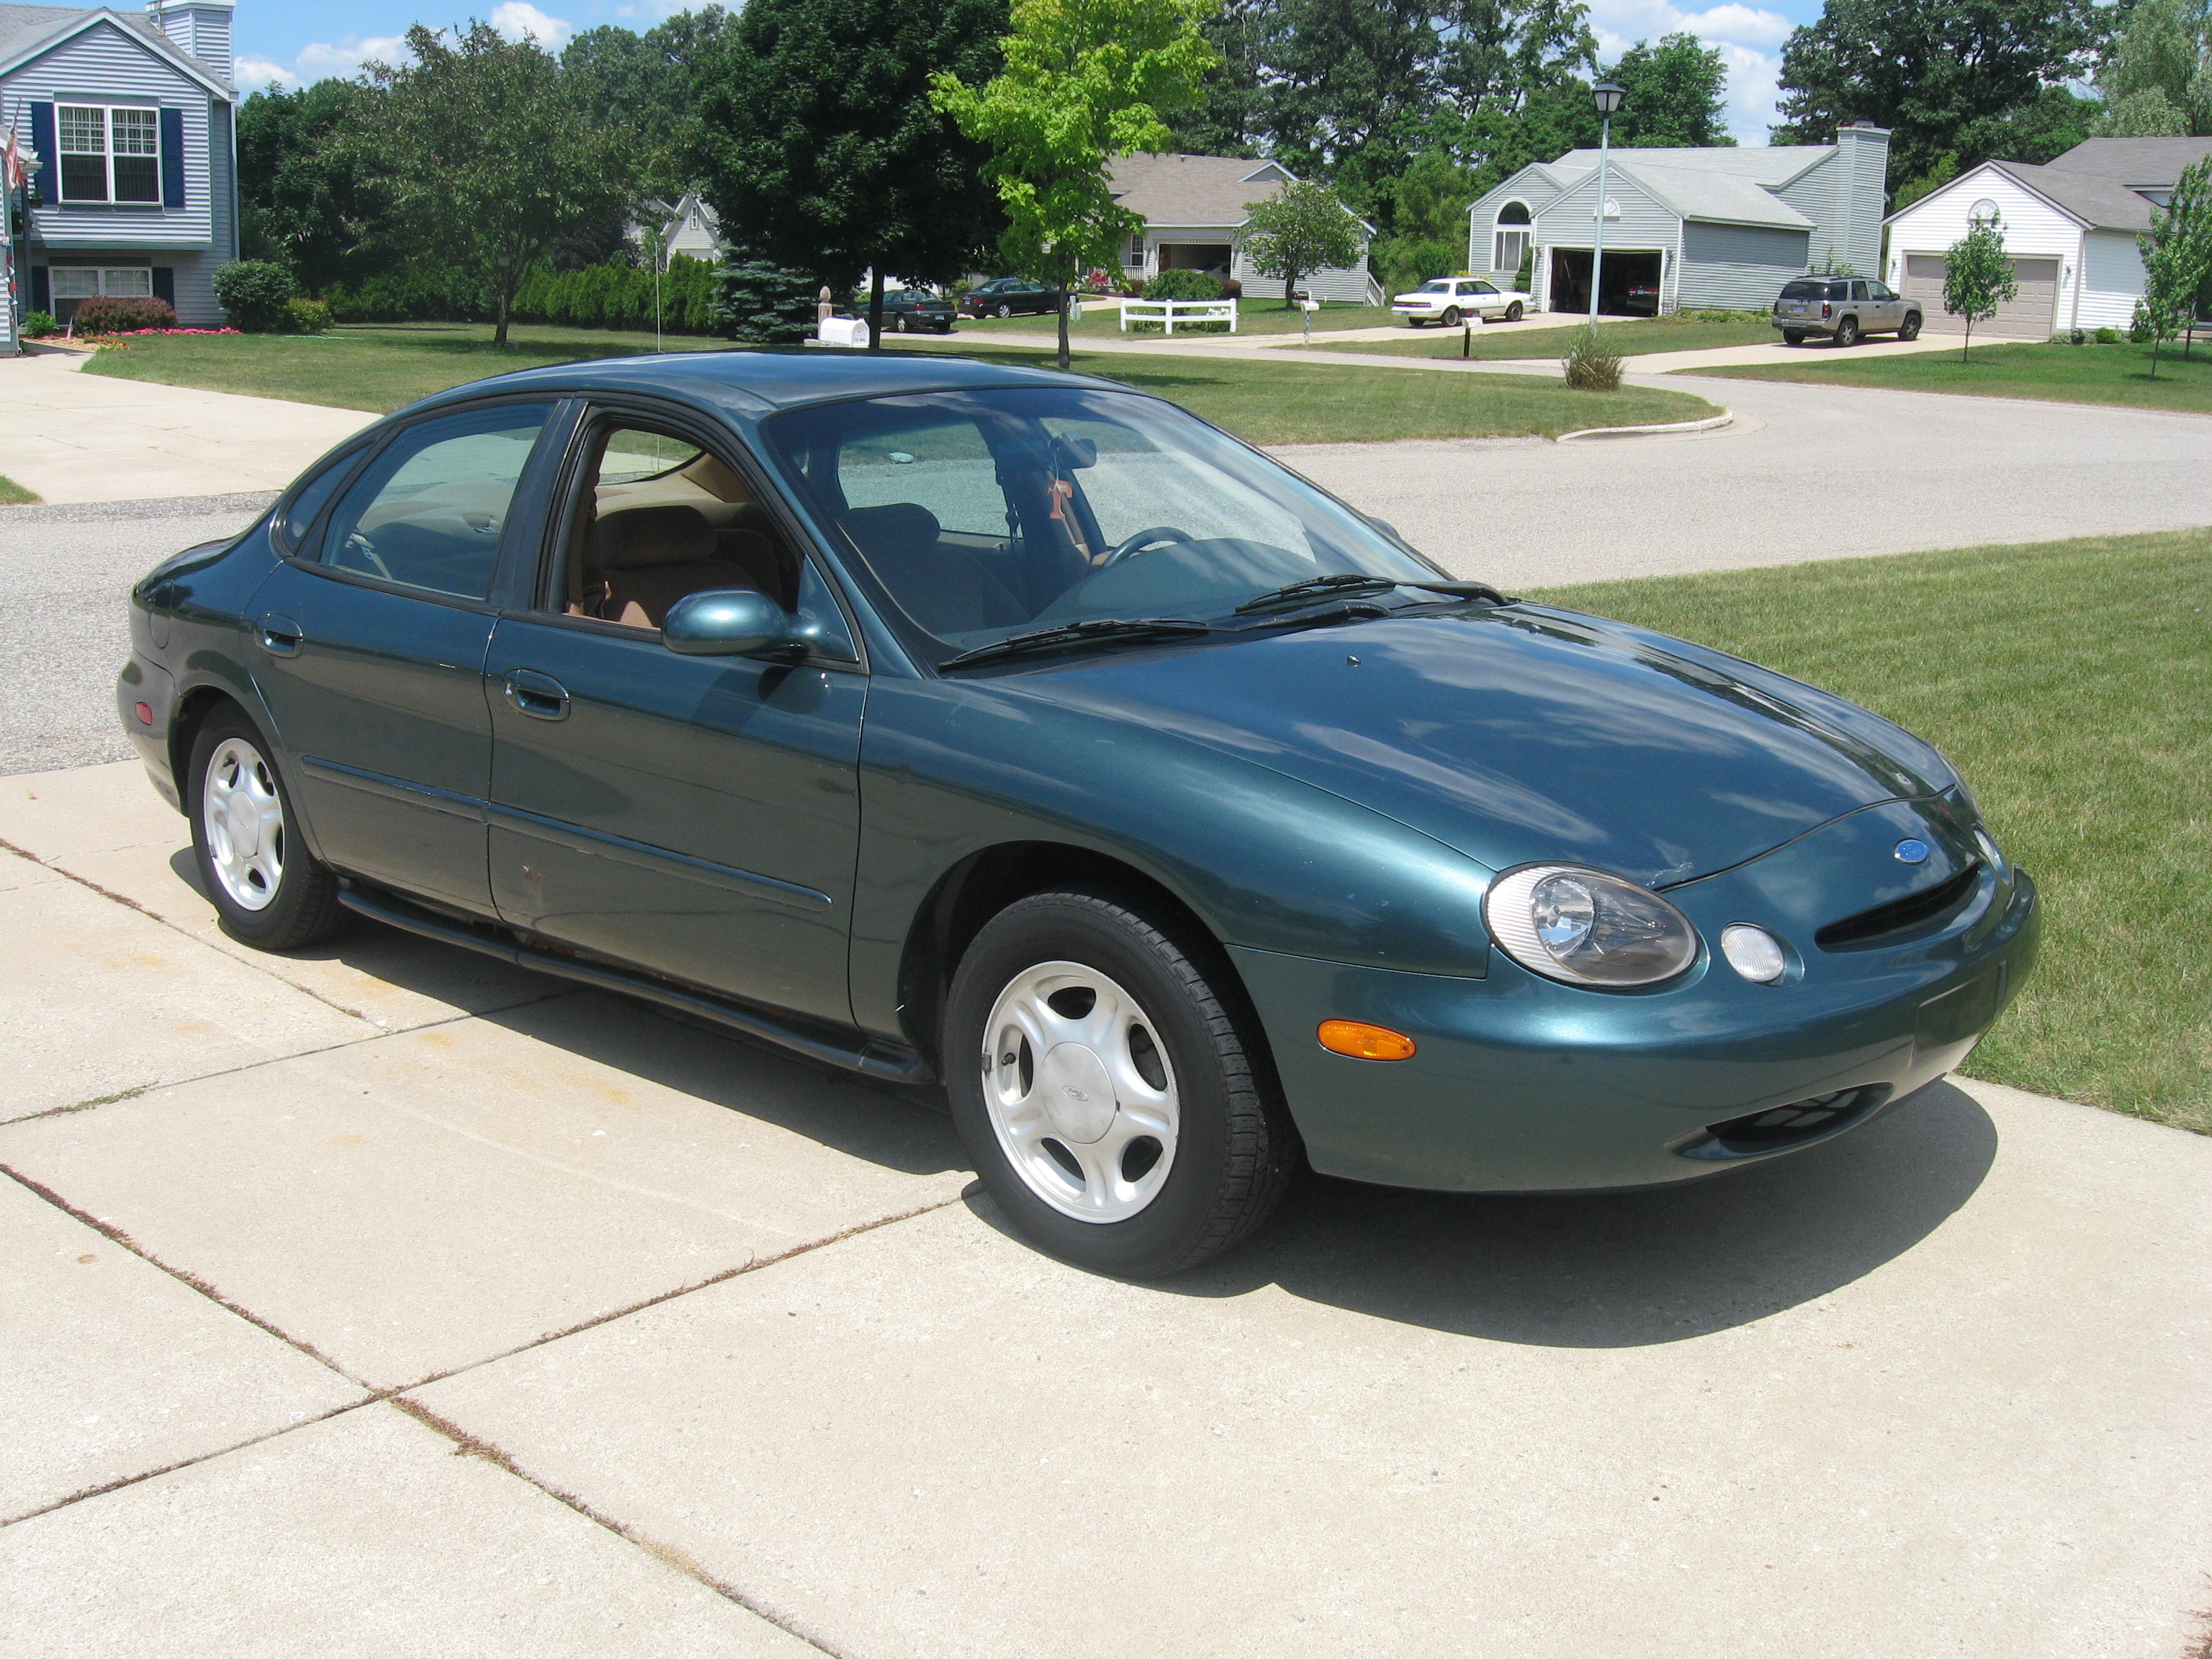 Jsikkema 1996 Ford Taurus Specs Photos Modification Info At Cardomain